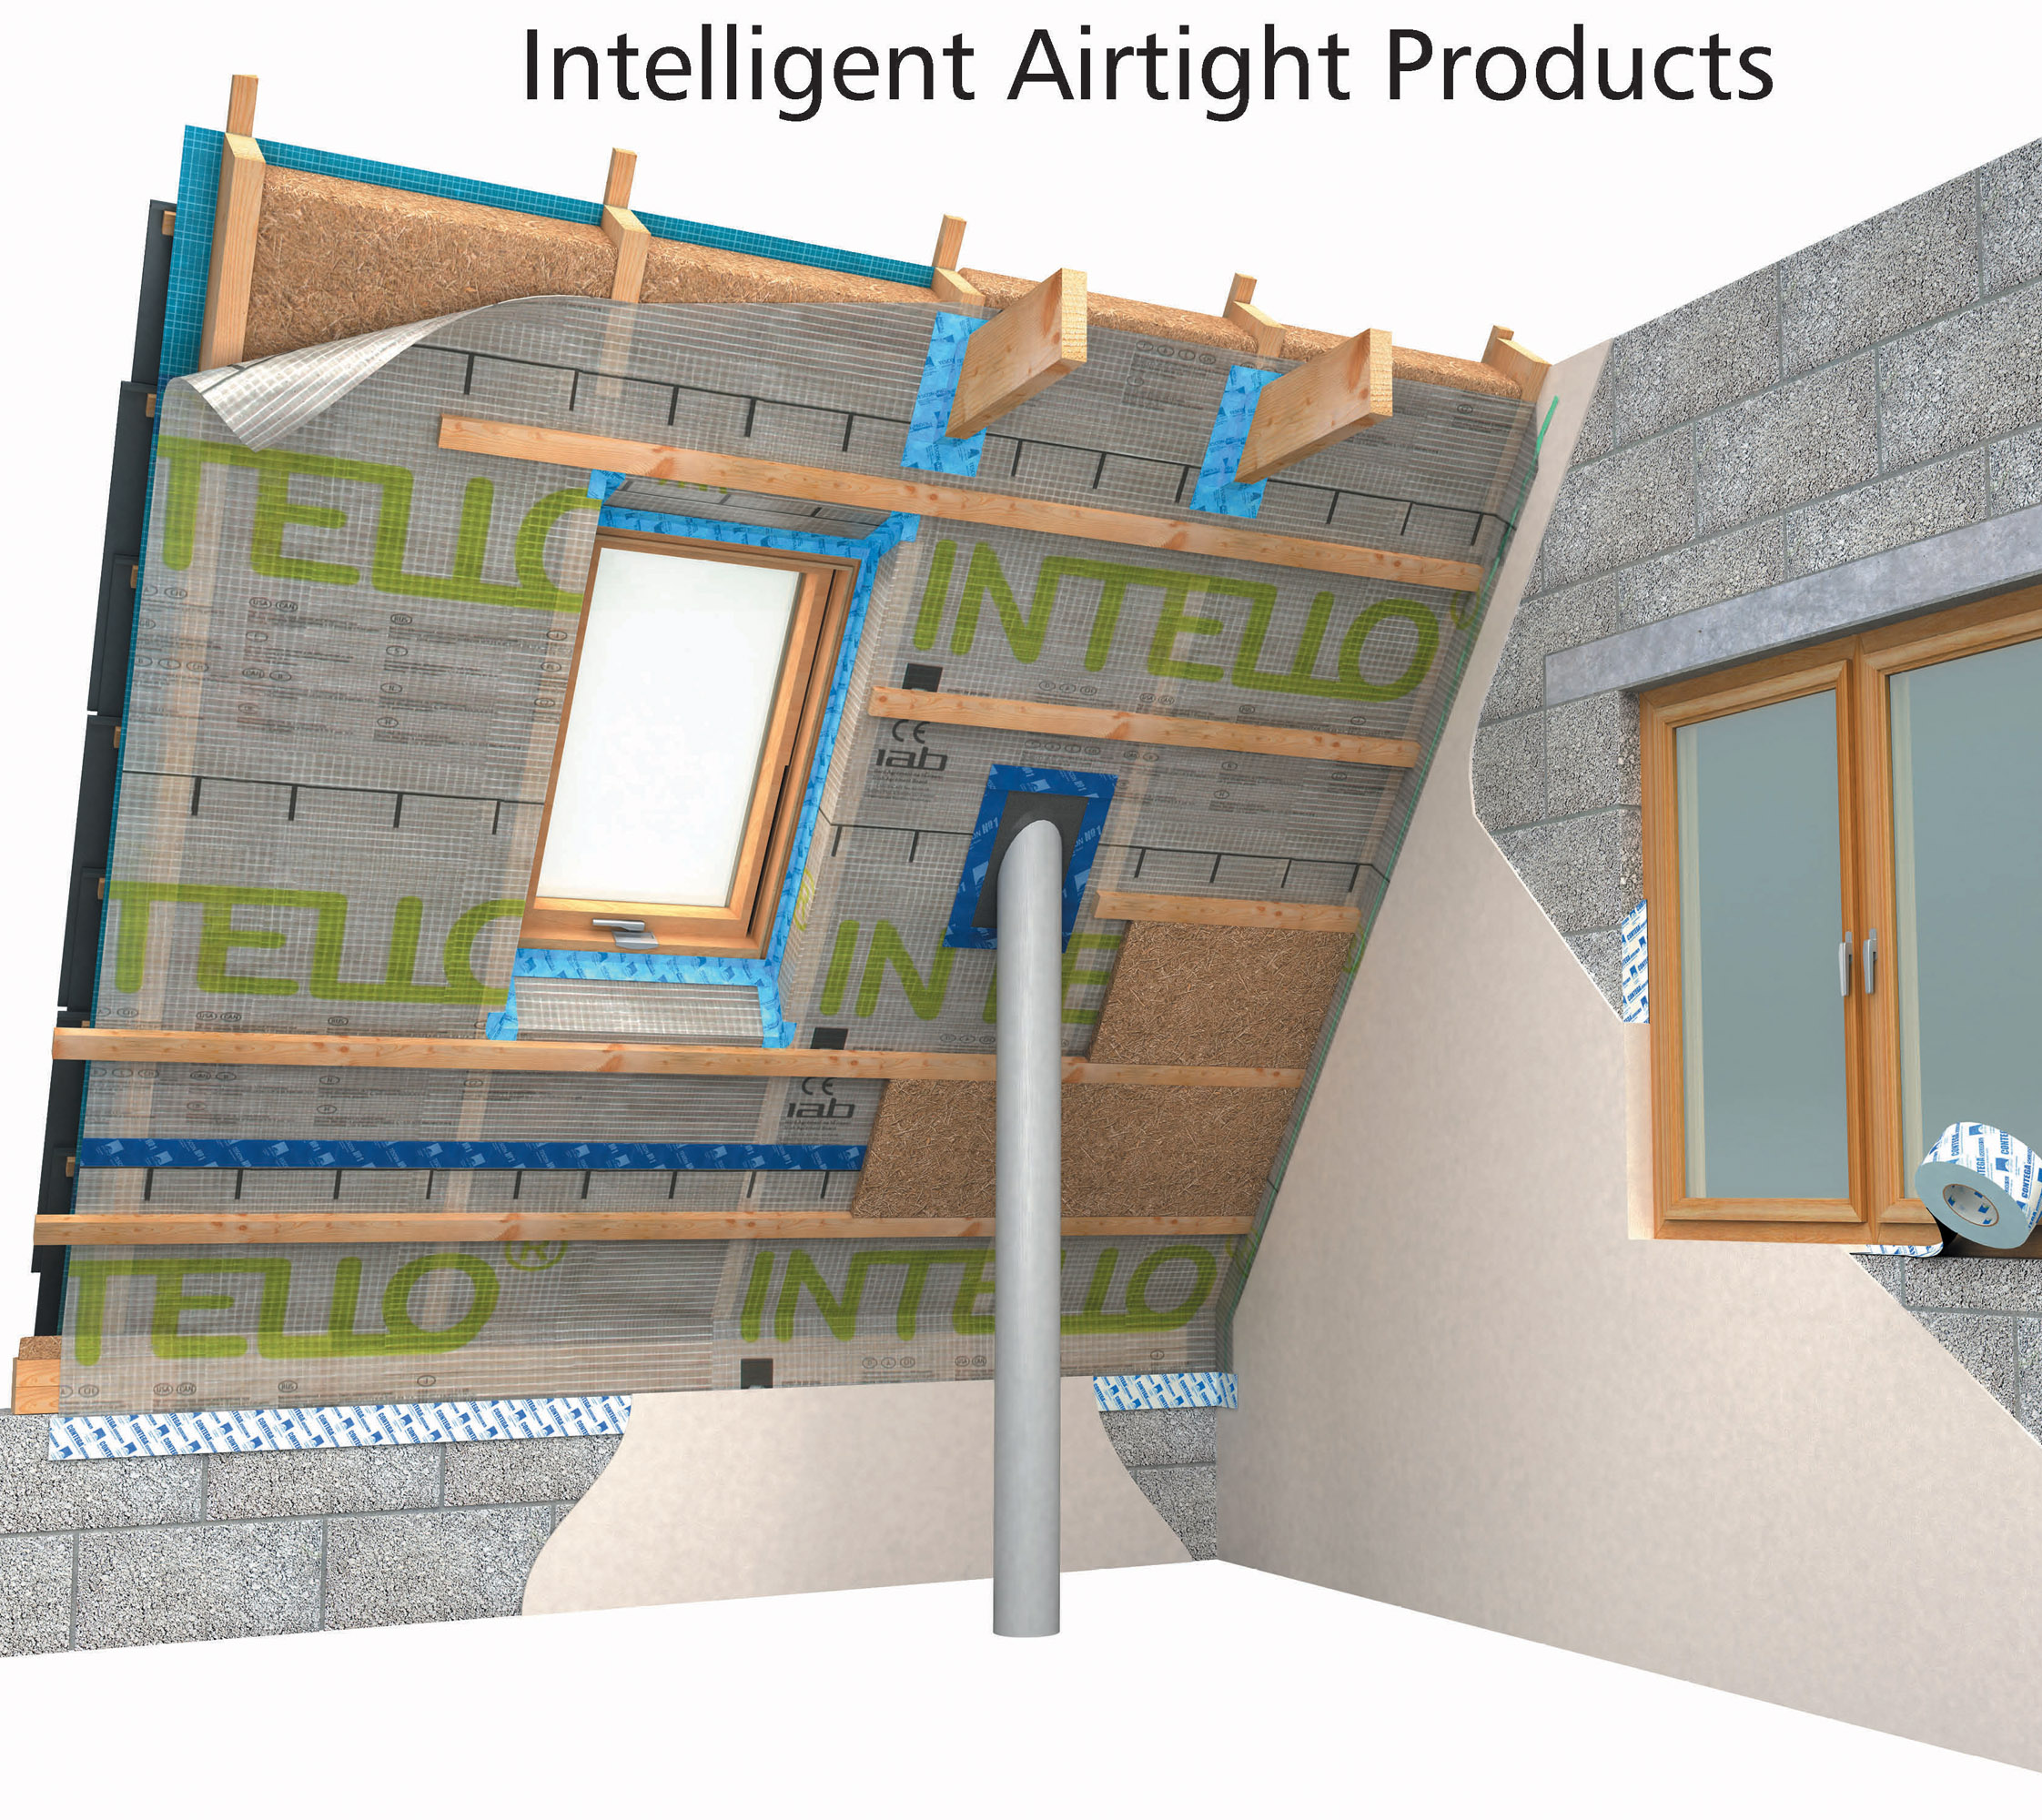 pro clima intelligent airtight and windtight products graphic